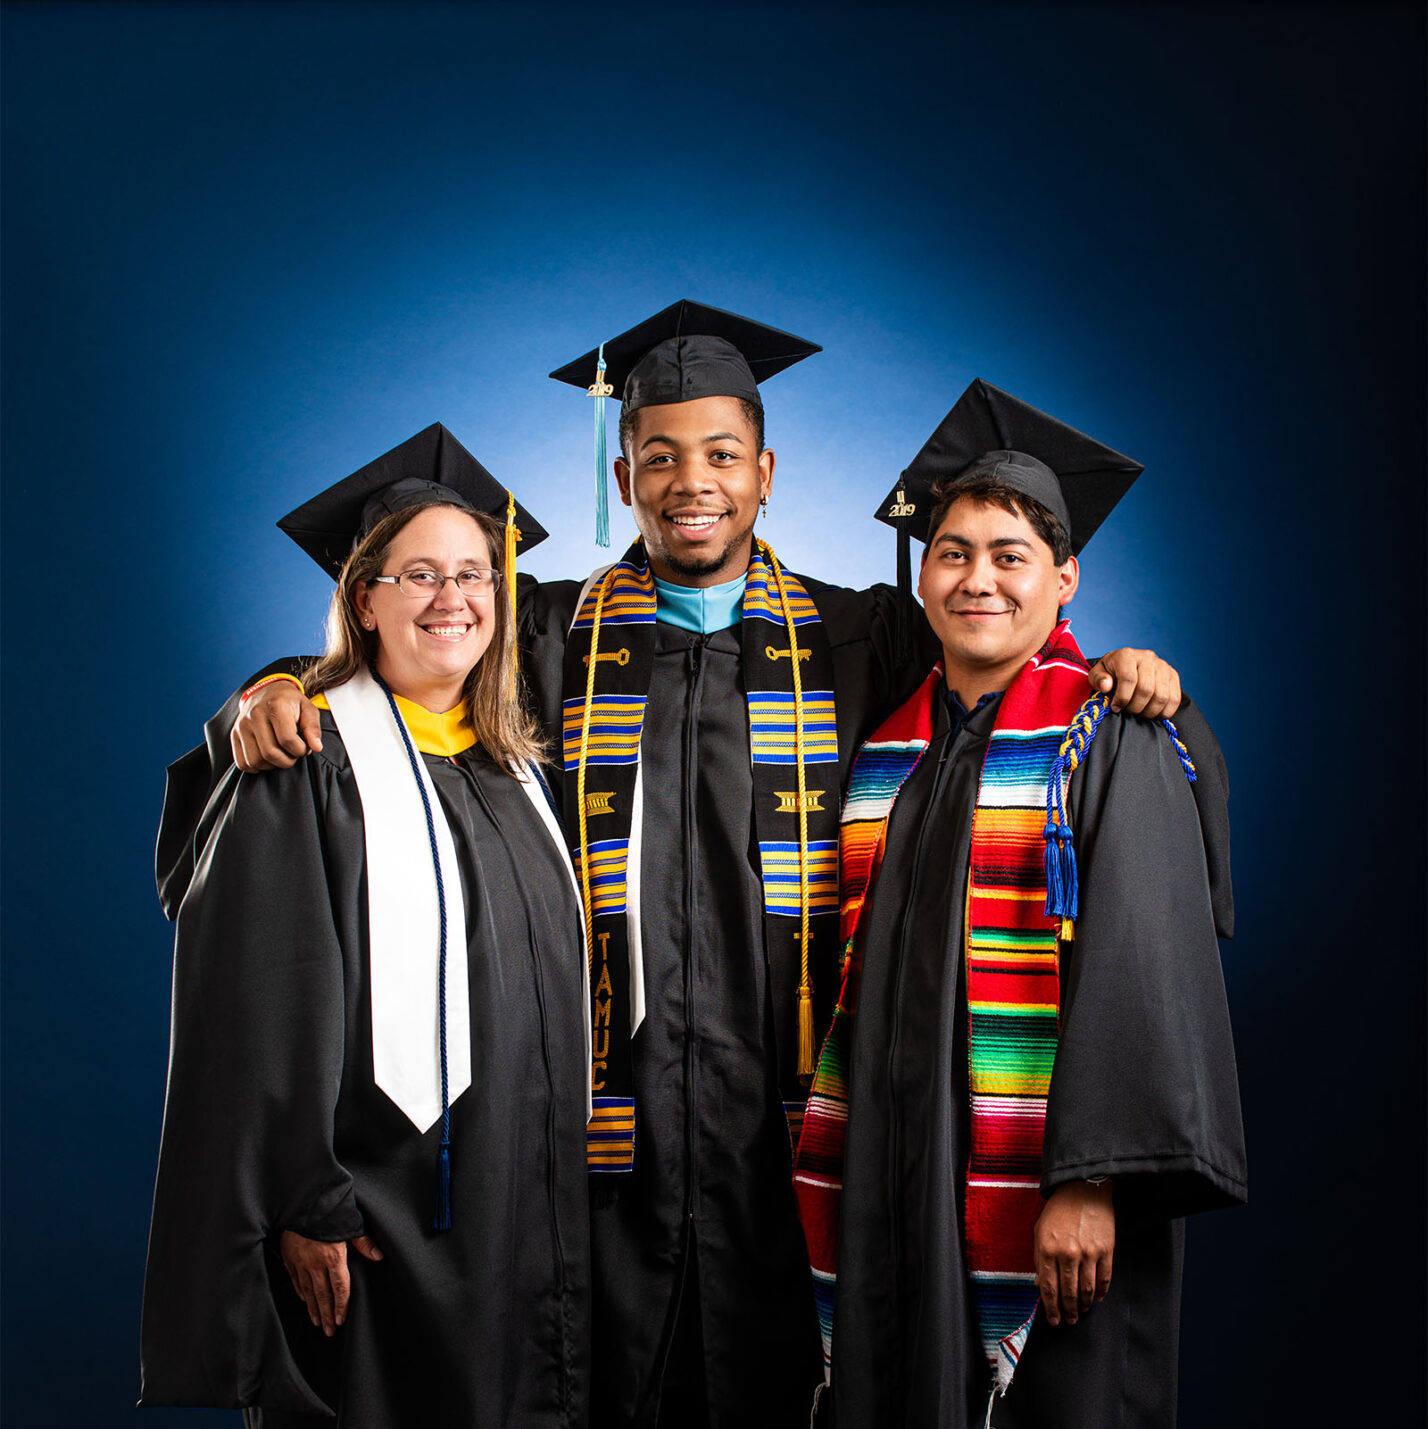 three students smiling at the camera in their cap and gown.